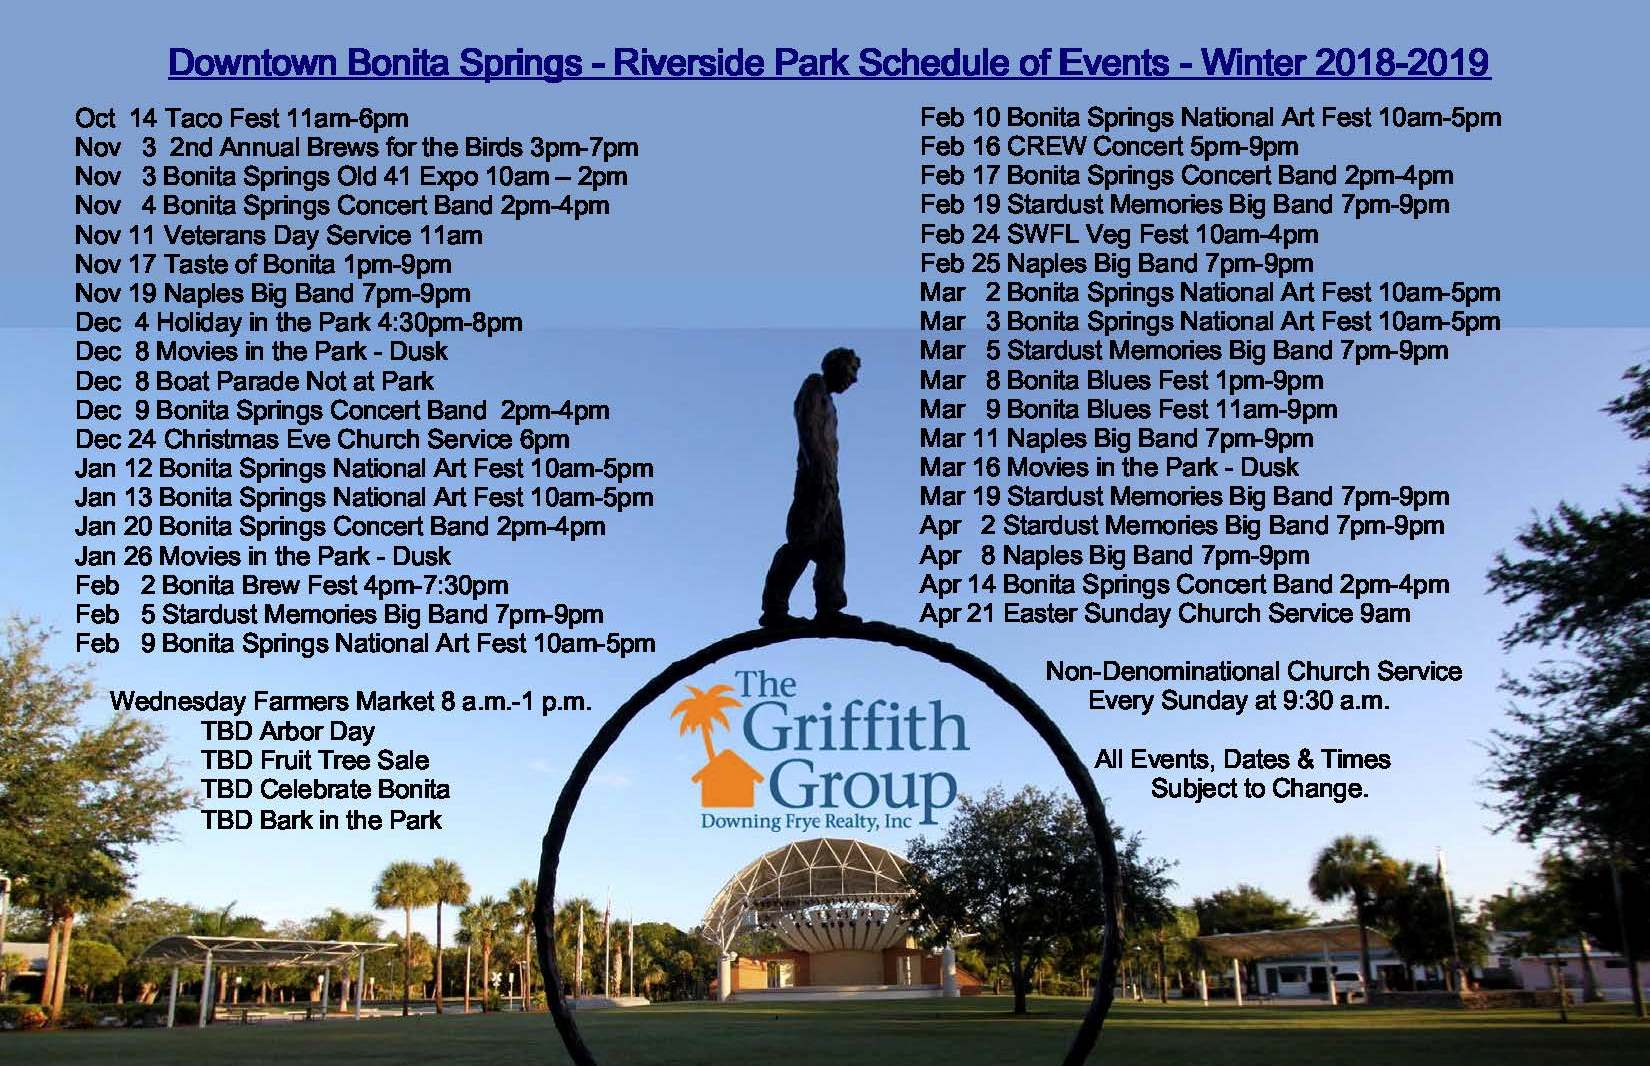 Florida Calendar Of Events 2019 Downtown Bonita Springs Florida Riverside Park Calendar of Events